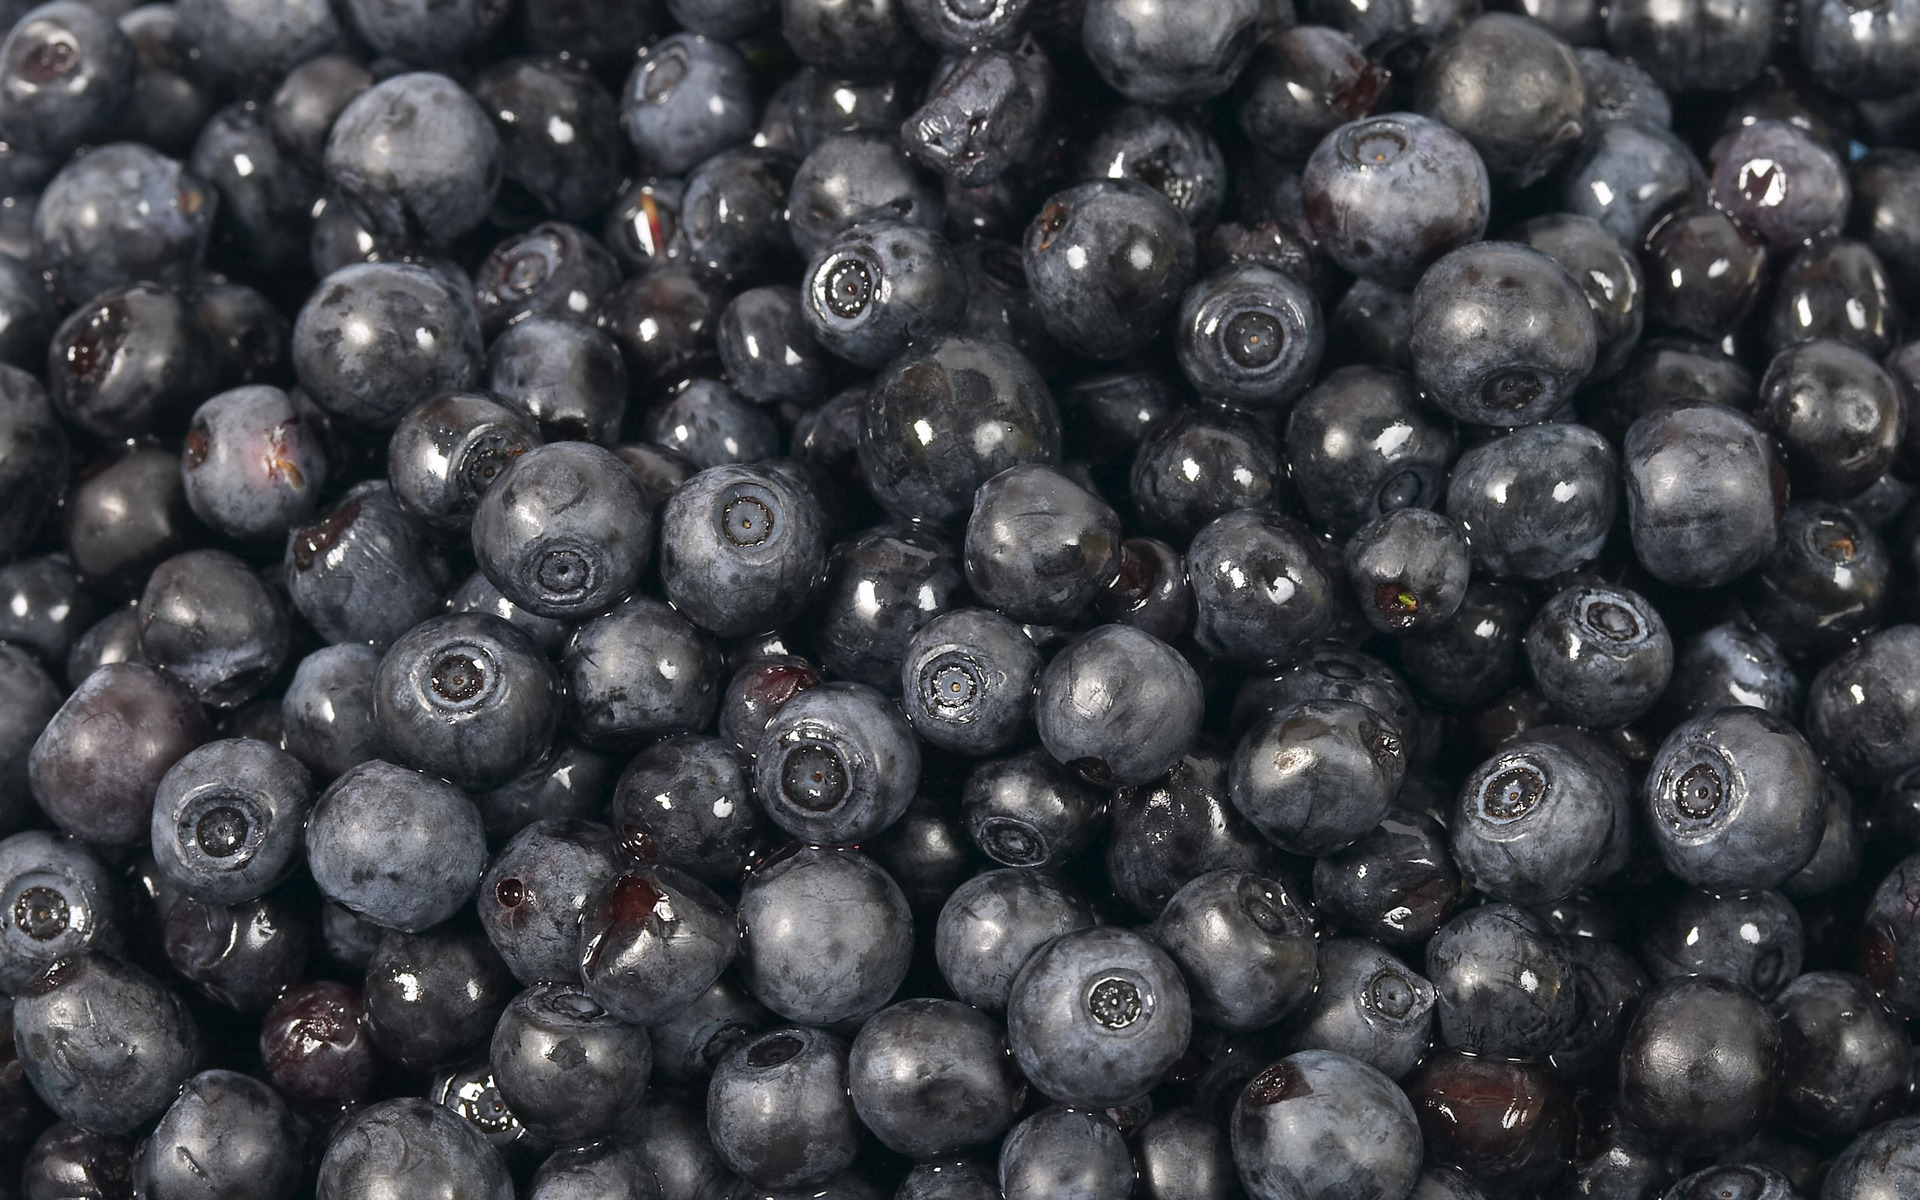 Blackberry, texture, photo, background